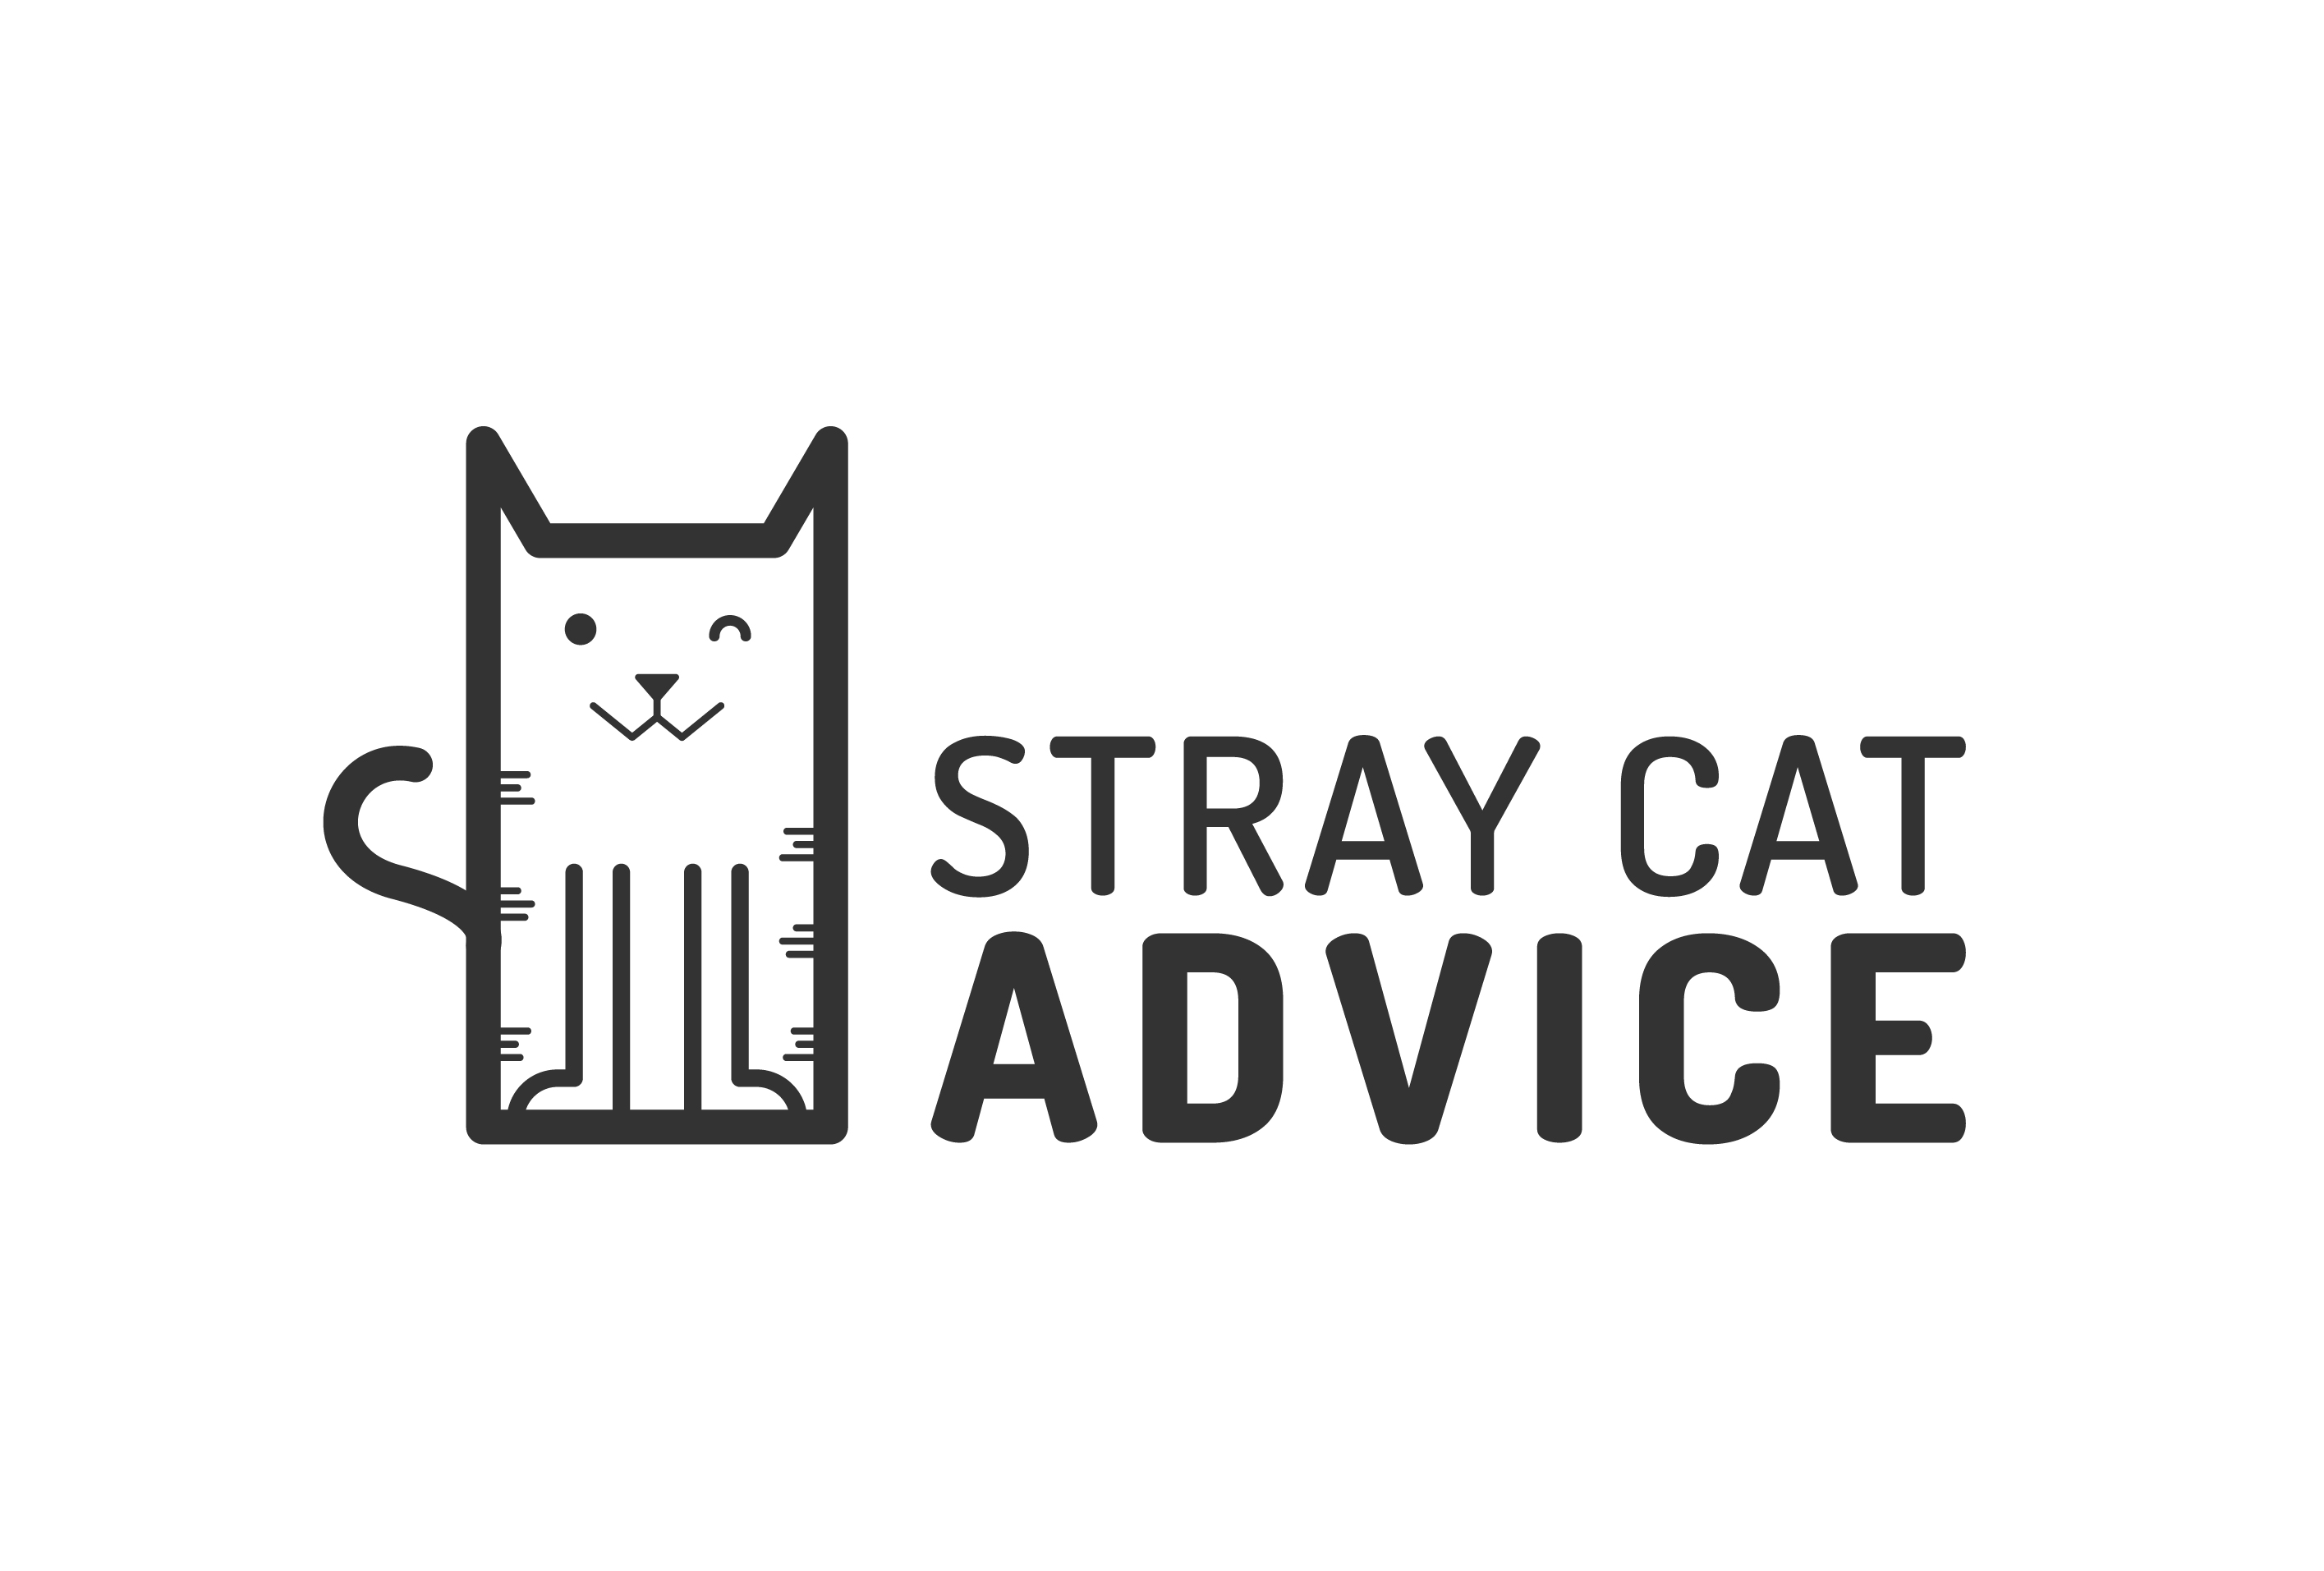 Stray Cat Advice